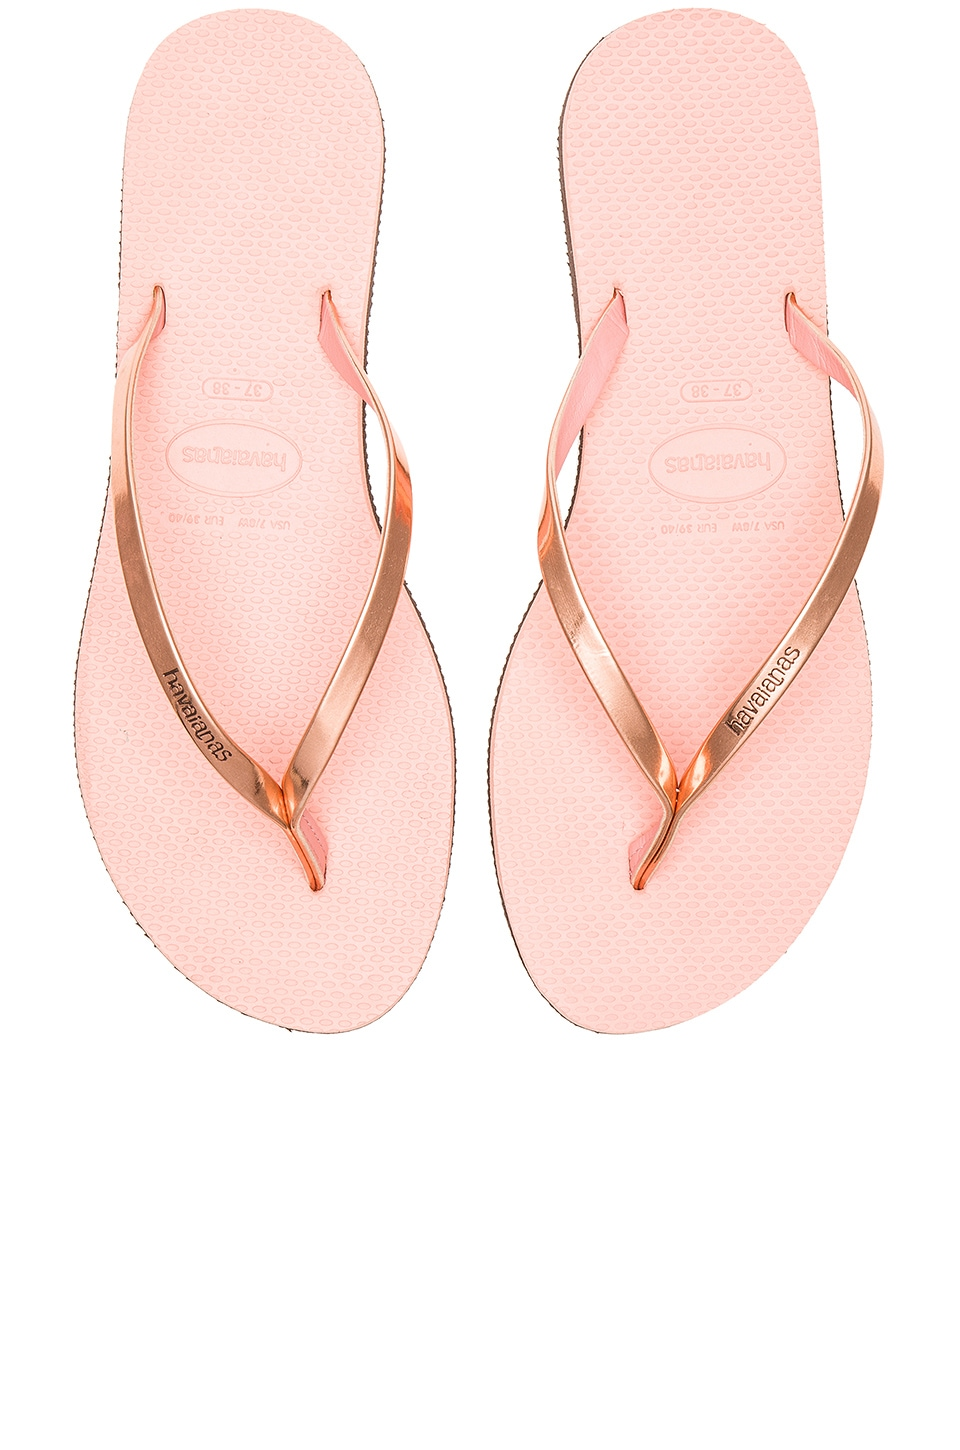 You Metallic Flip Flop at Revolve Clothing